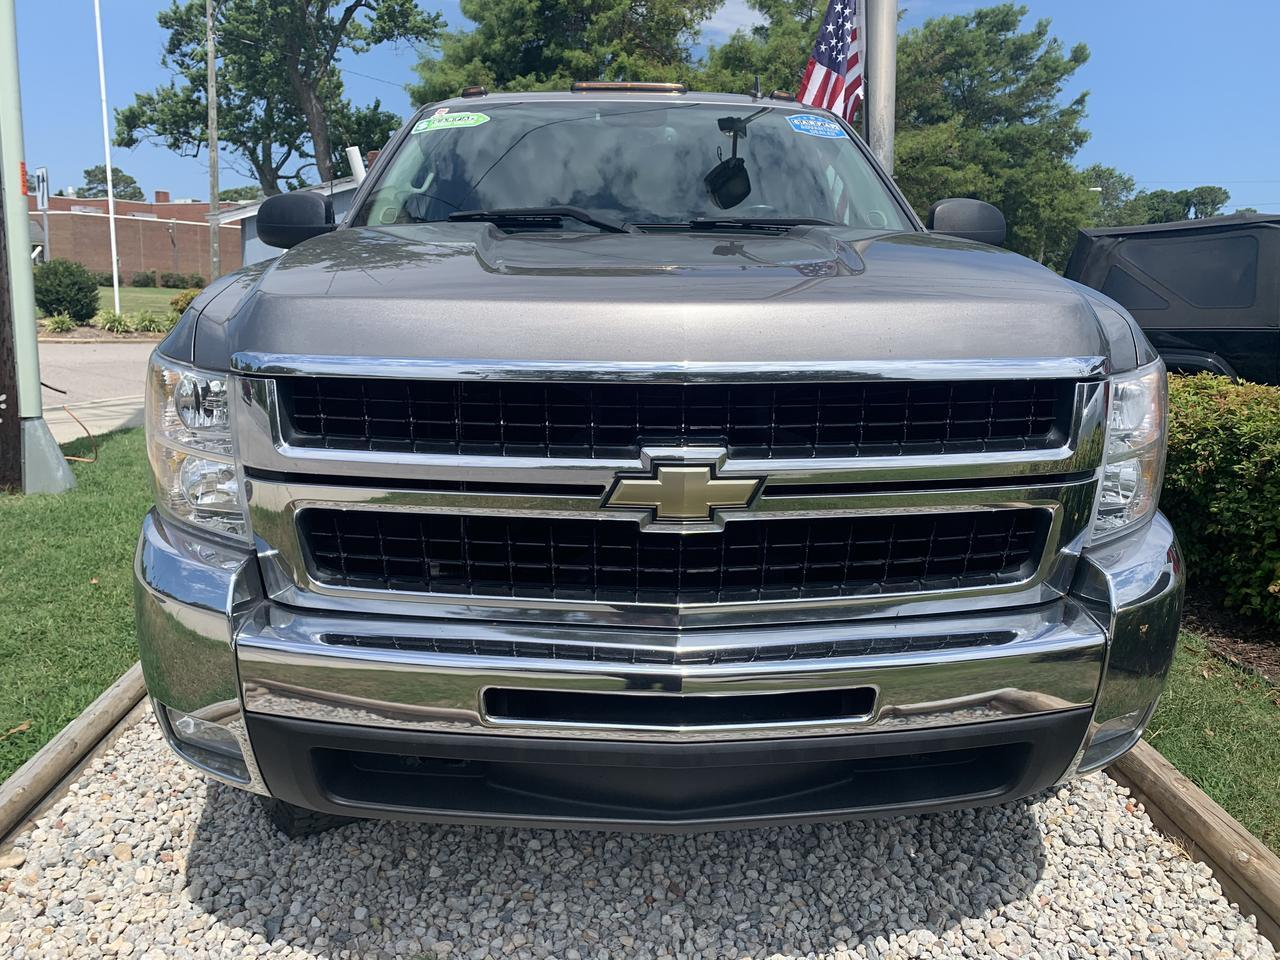 2008 CHEVROLET SILVERADO 2500 2LT CREW CAB 4X4, WARRANTY, PARKING SENSORS, AUX PORT, ONSTAR, SIRIUS SATELLITE RADIO, 1 OWNER! Norfolk VA